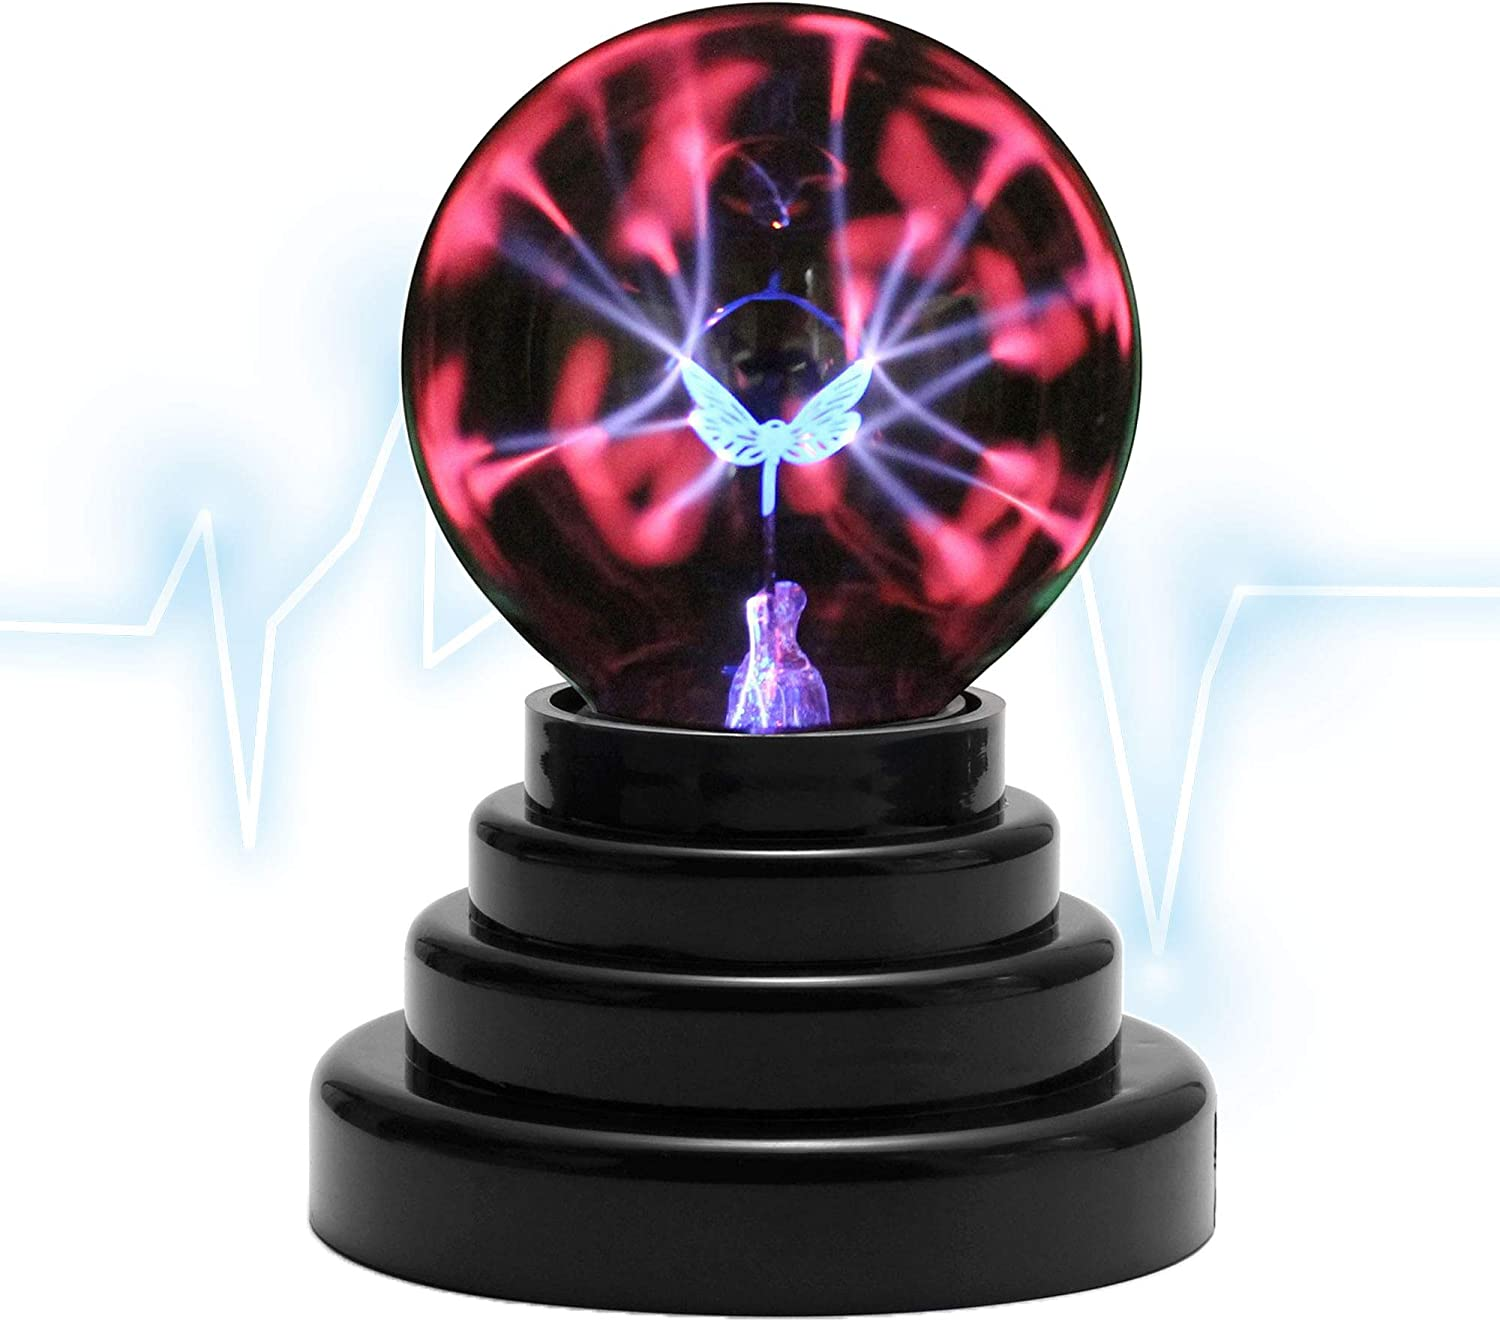 Mangsen Butterfly Plasma Ball 3 Inch Magic Touch Sensitive USB Powered Thunder Lightning Glass Sphere for Decorations//Party//Bedroom